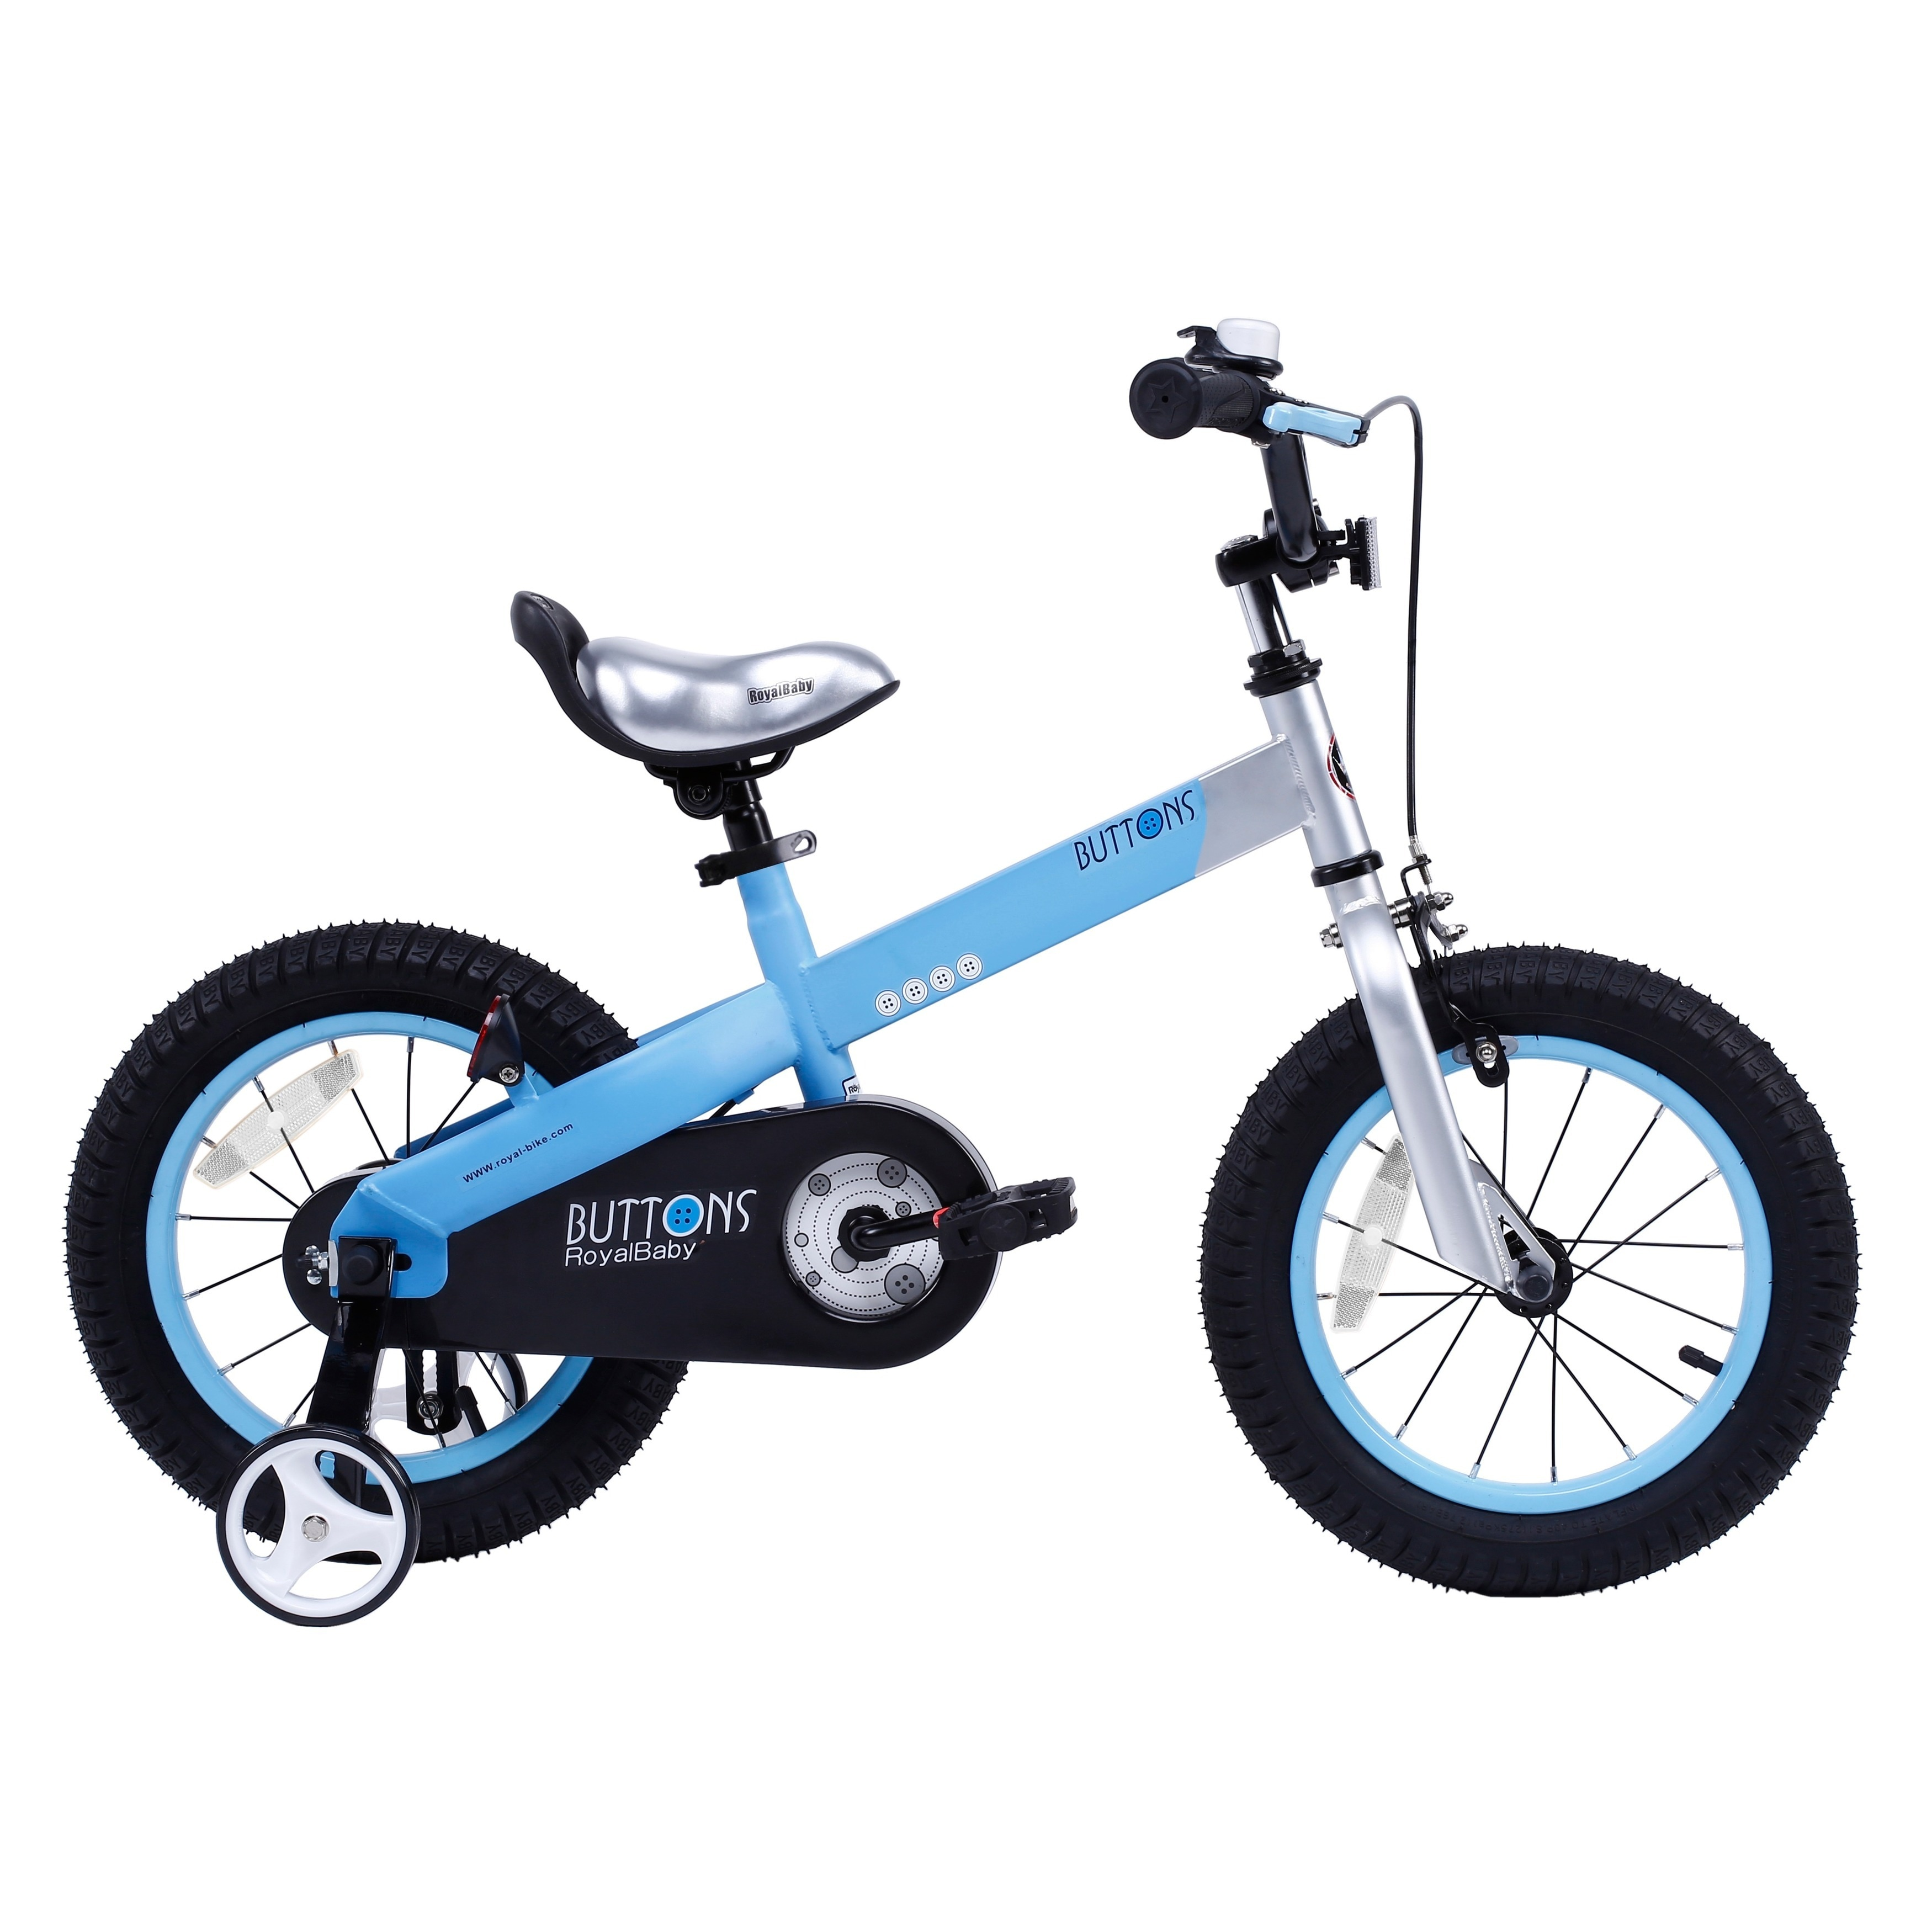 Royalbaby Matte Buttons 12-inch Kids' Bike with Training ...